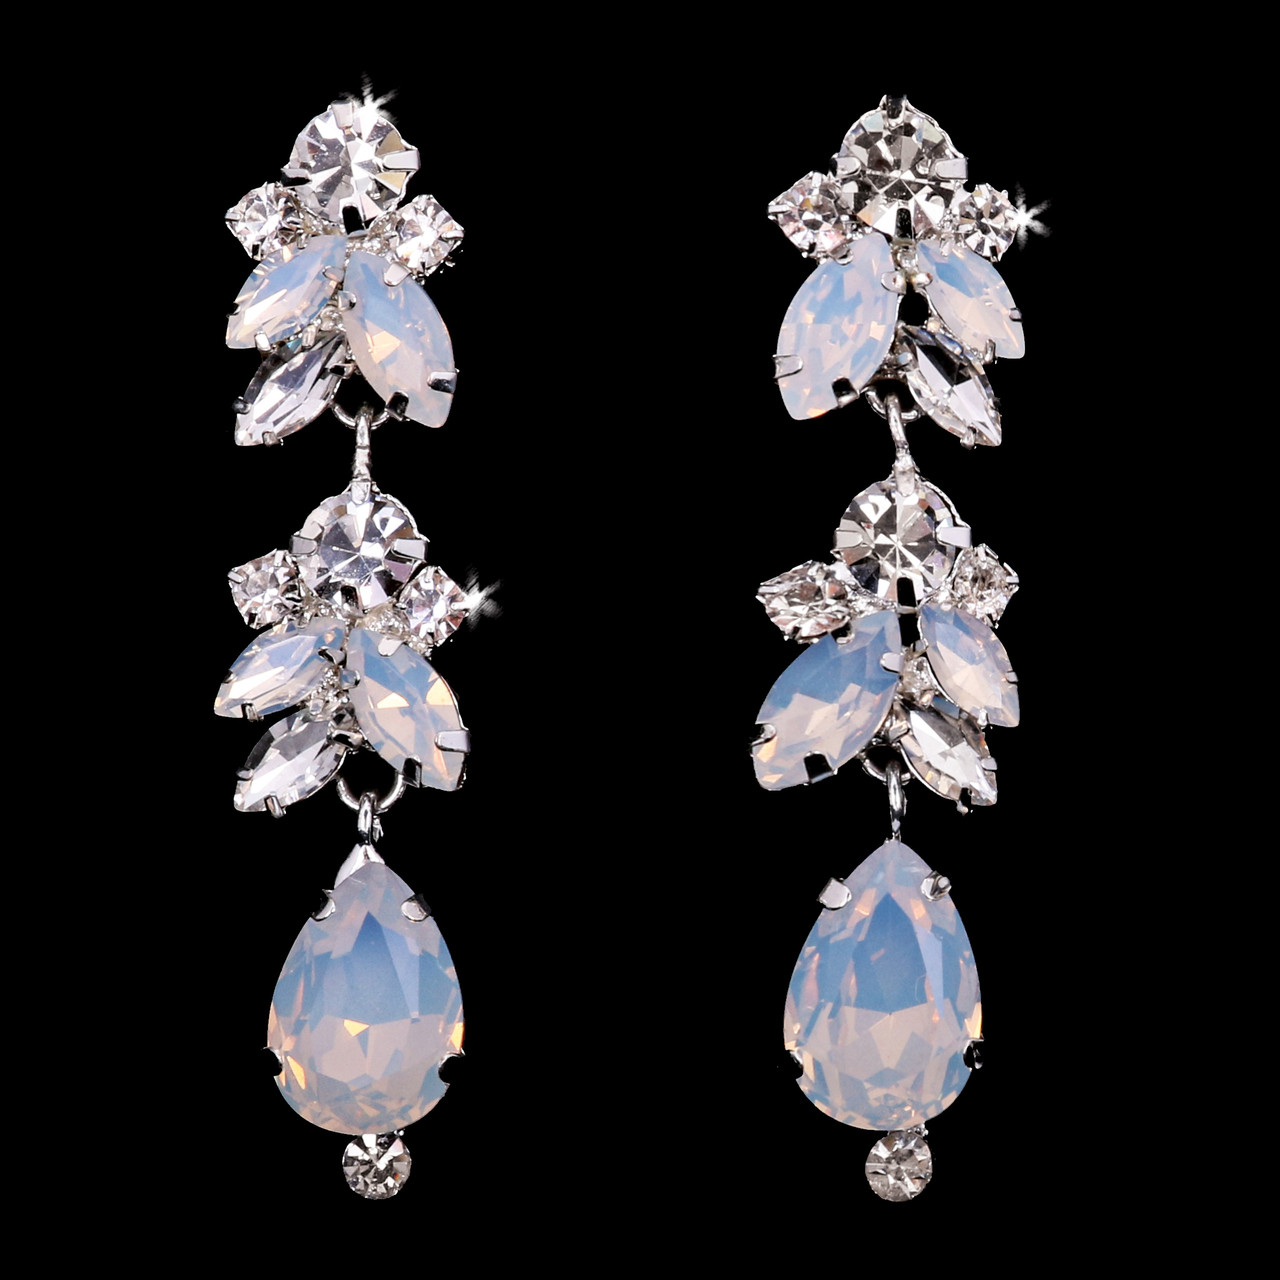 En Vogue Bridal Style E1960 - Rhinestone Earrings